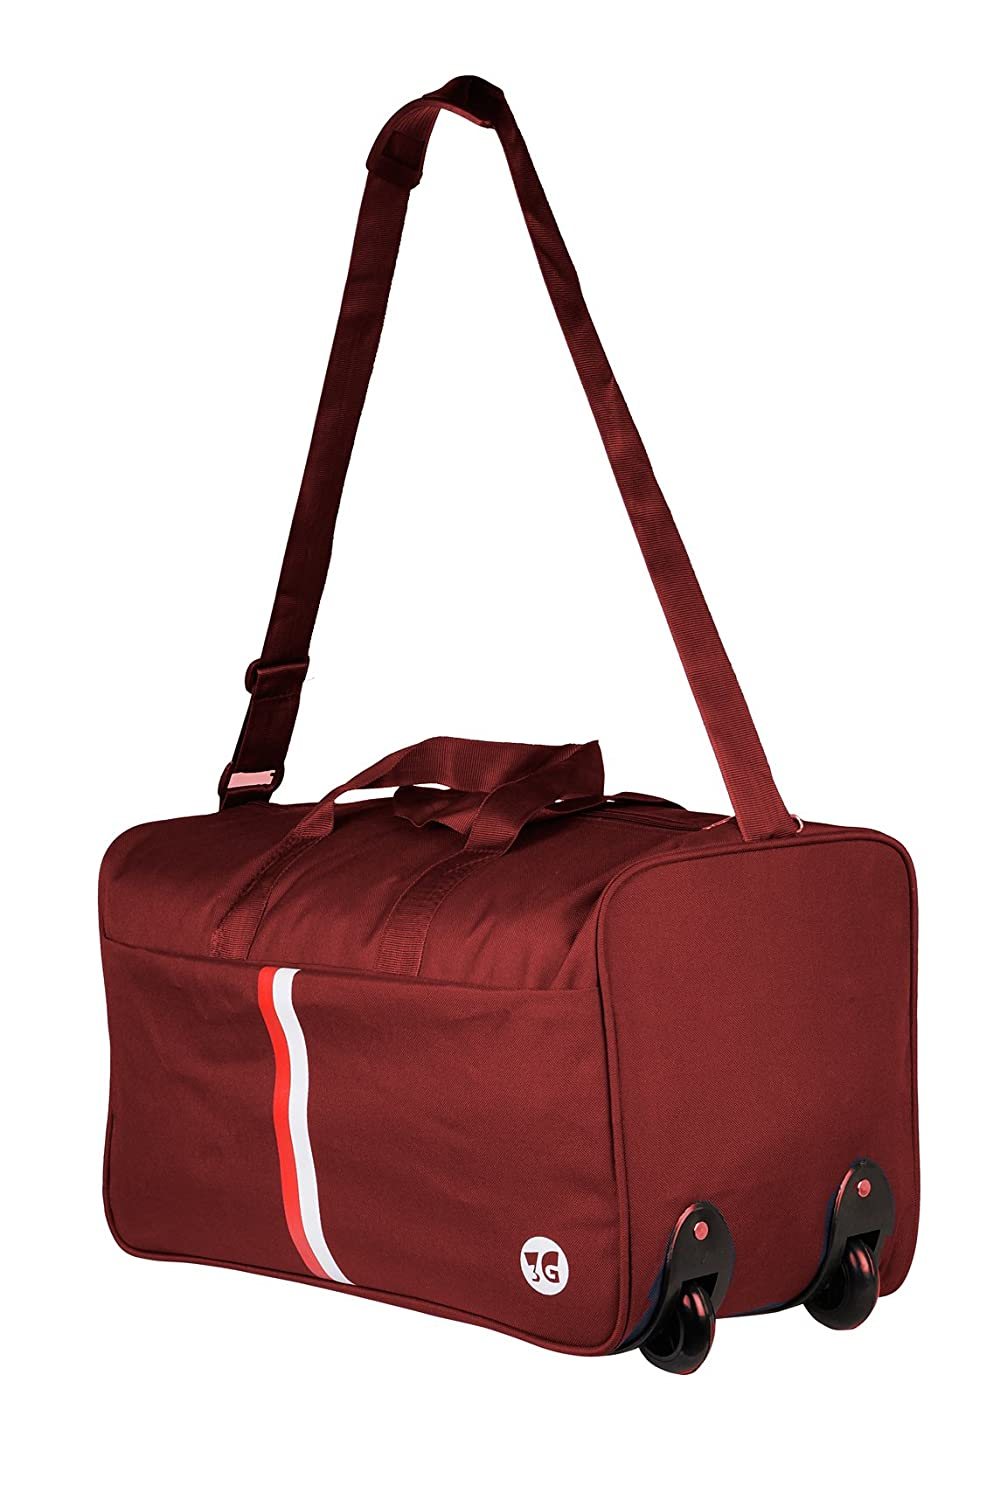 3G Polyester 1200 Cms Maroon-Grey Soft Sided Suitcase & Trolley Bag